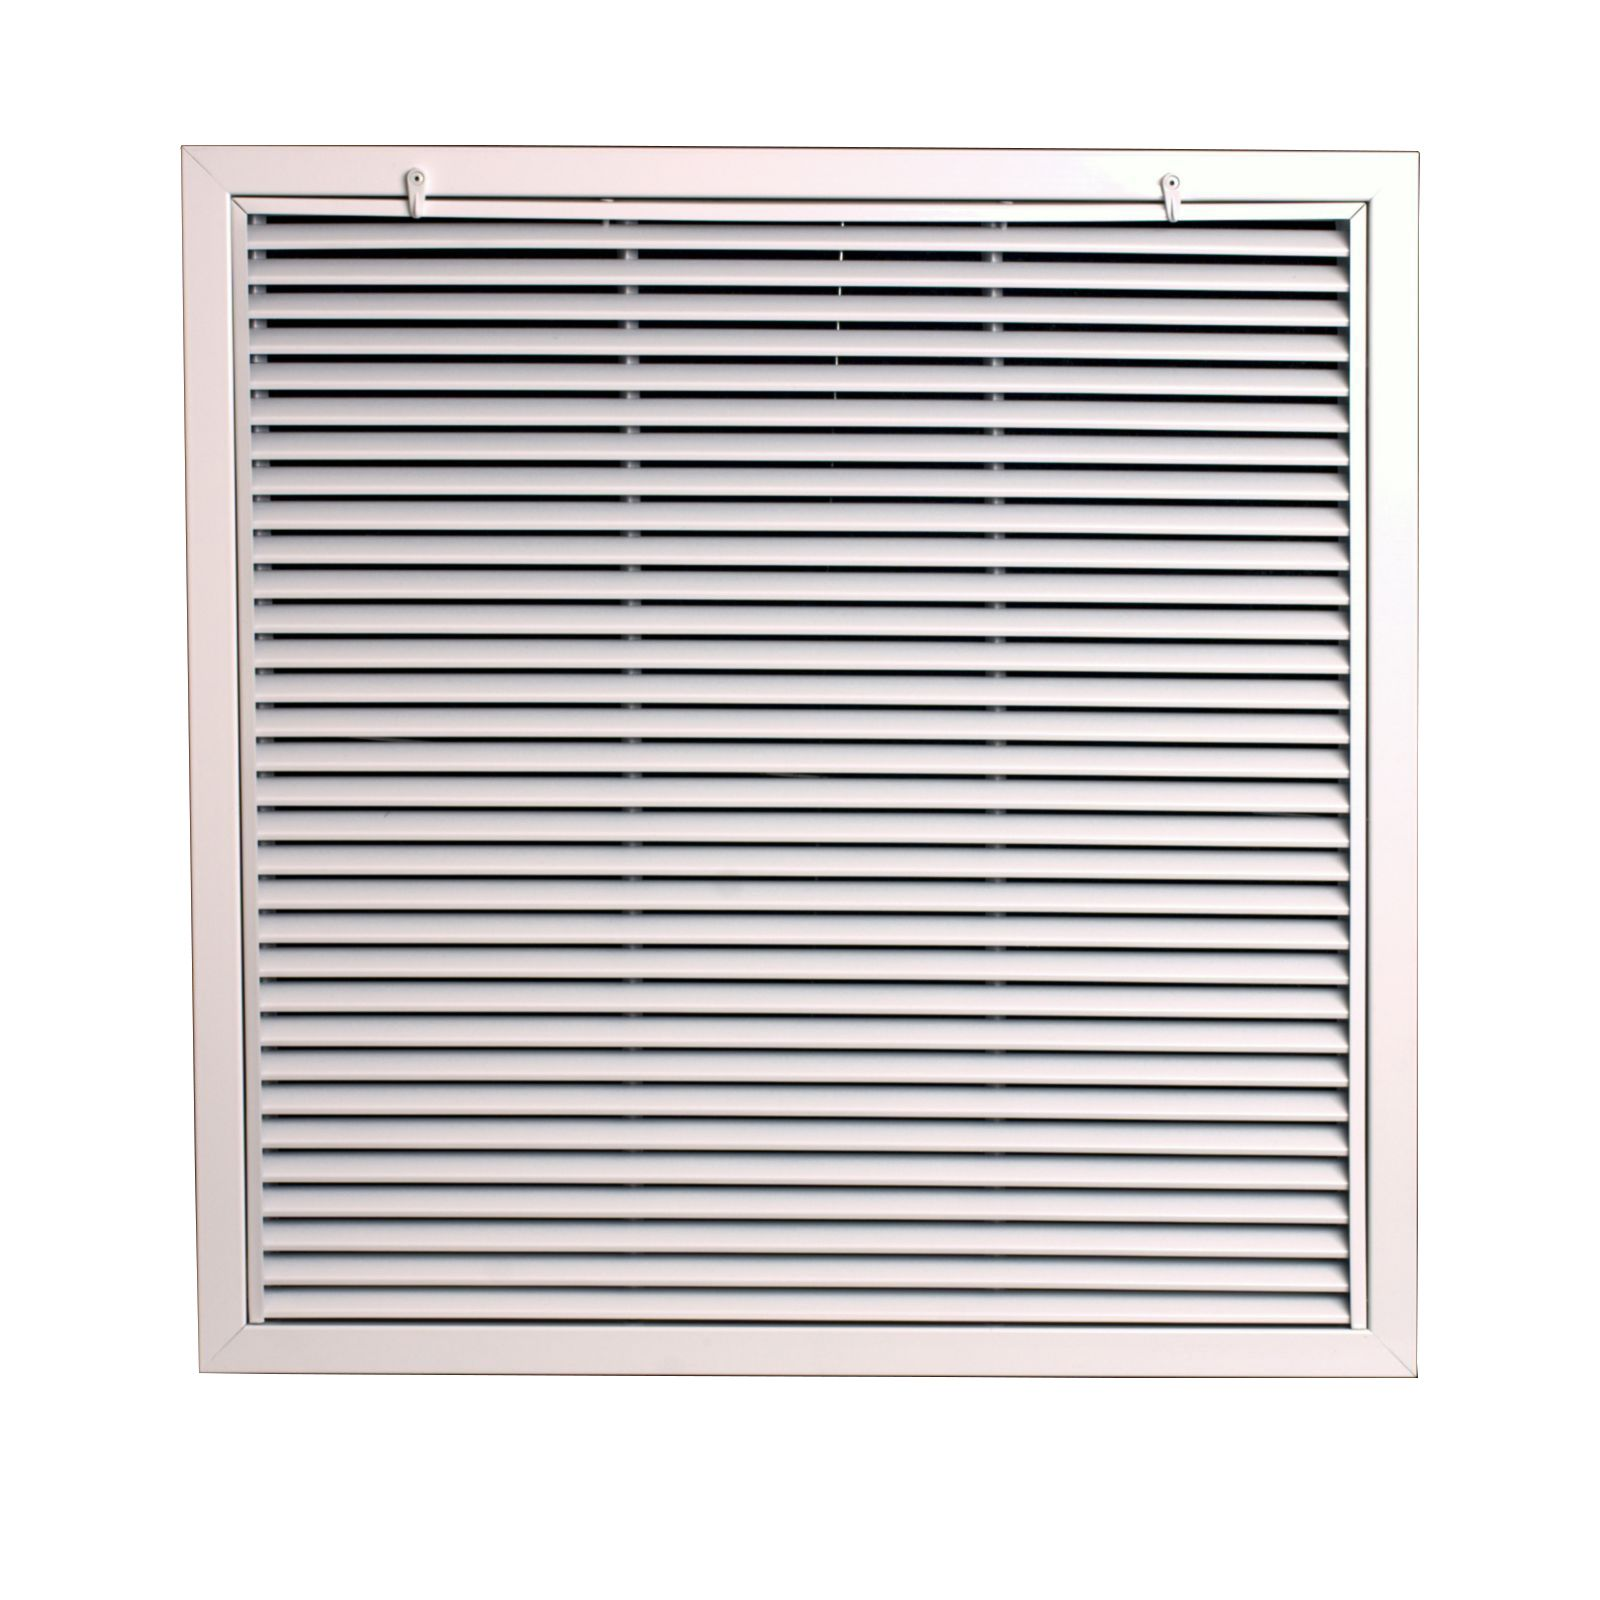 "Grille Tech RAFT2424 - Aluminum T-Bar Lay-In Filter Return, 24"" X 24"" - Opens to accept 1"" Filter"